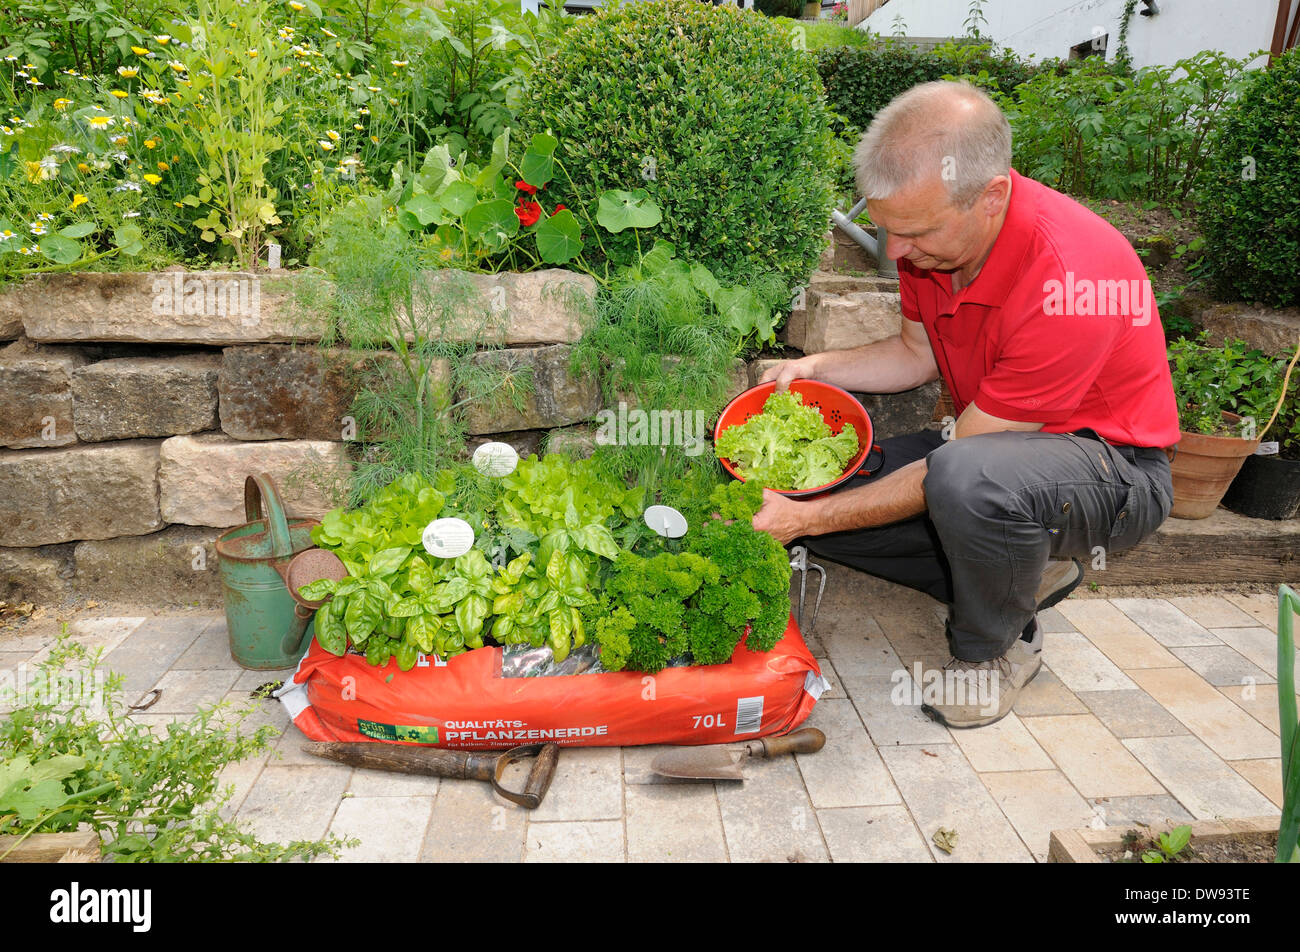 Sack with flower soil, herbs and lettuce - Stock Image